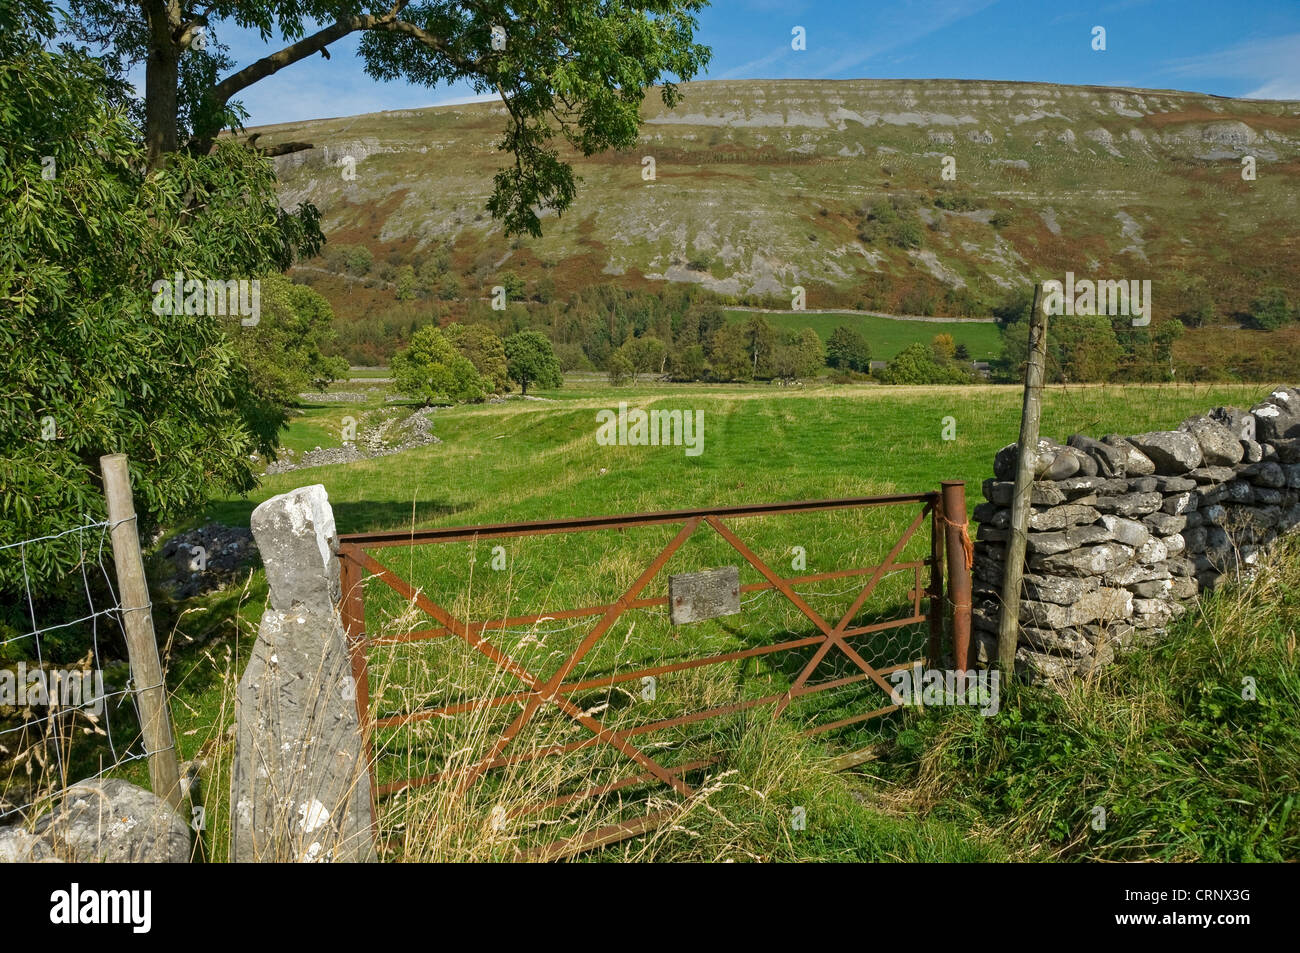 No public access sign on rusty metal gate in Littondale in the Yorkshire Dales. - Stock Image